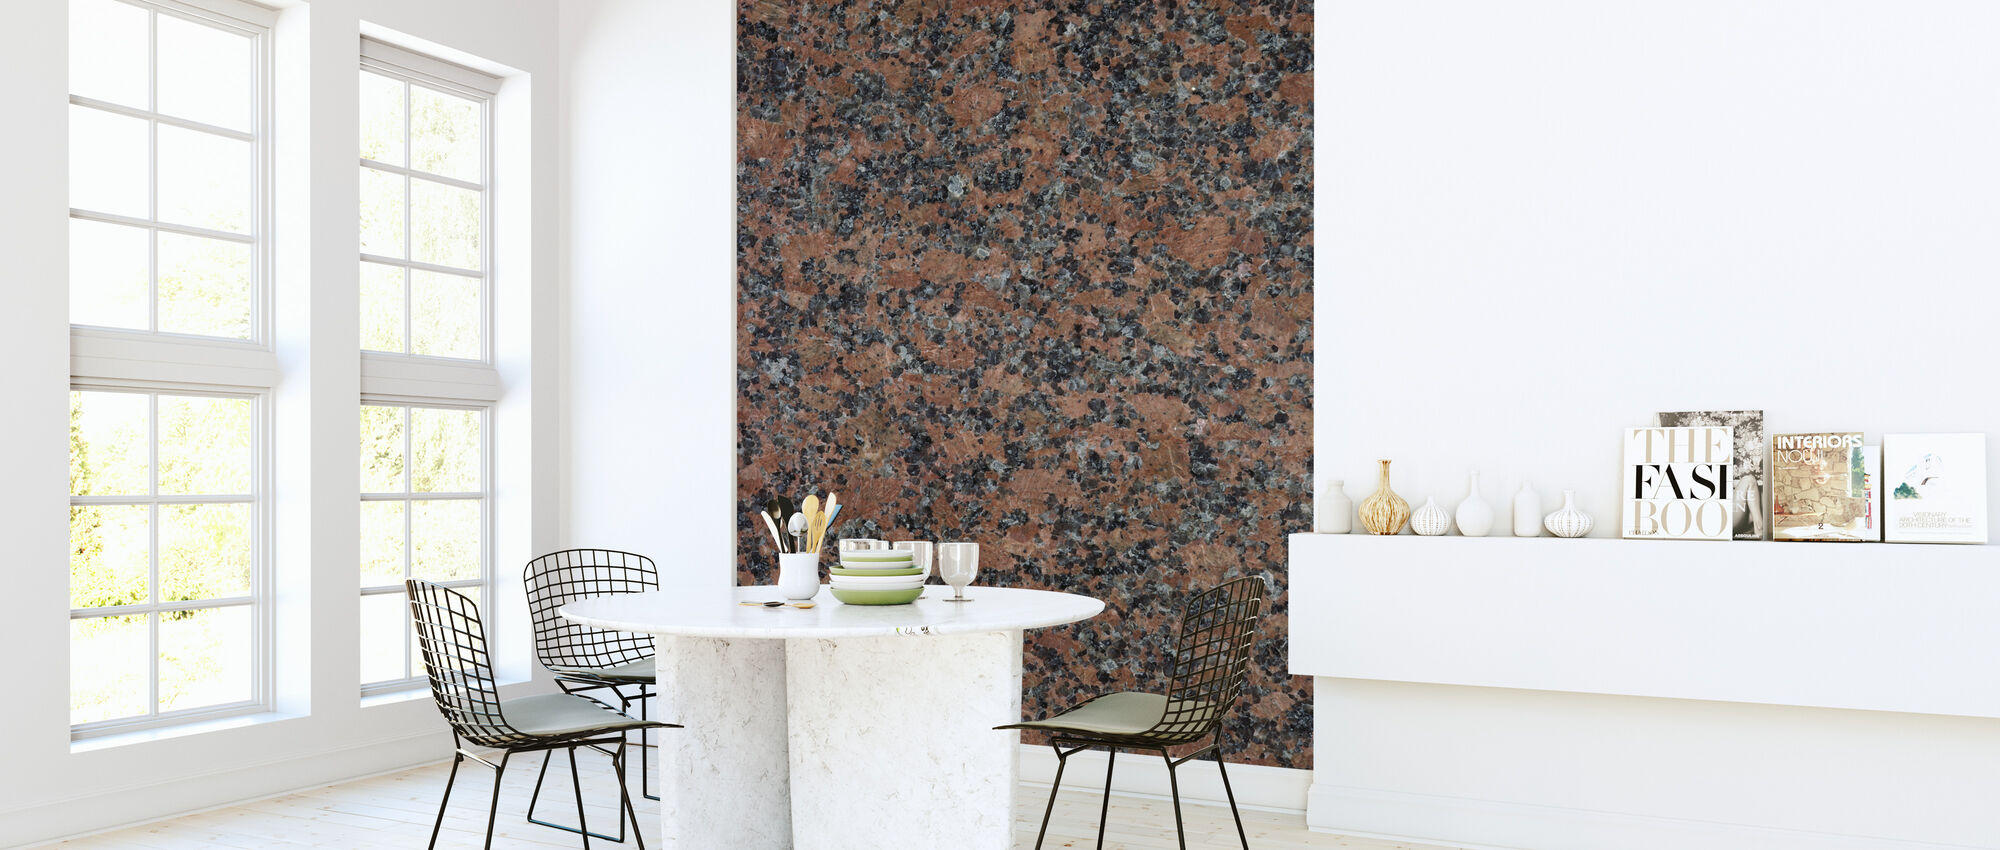 Black and Brown Granite - Wallpaper - Kitchen